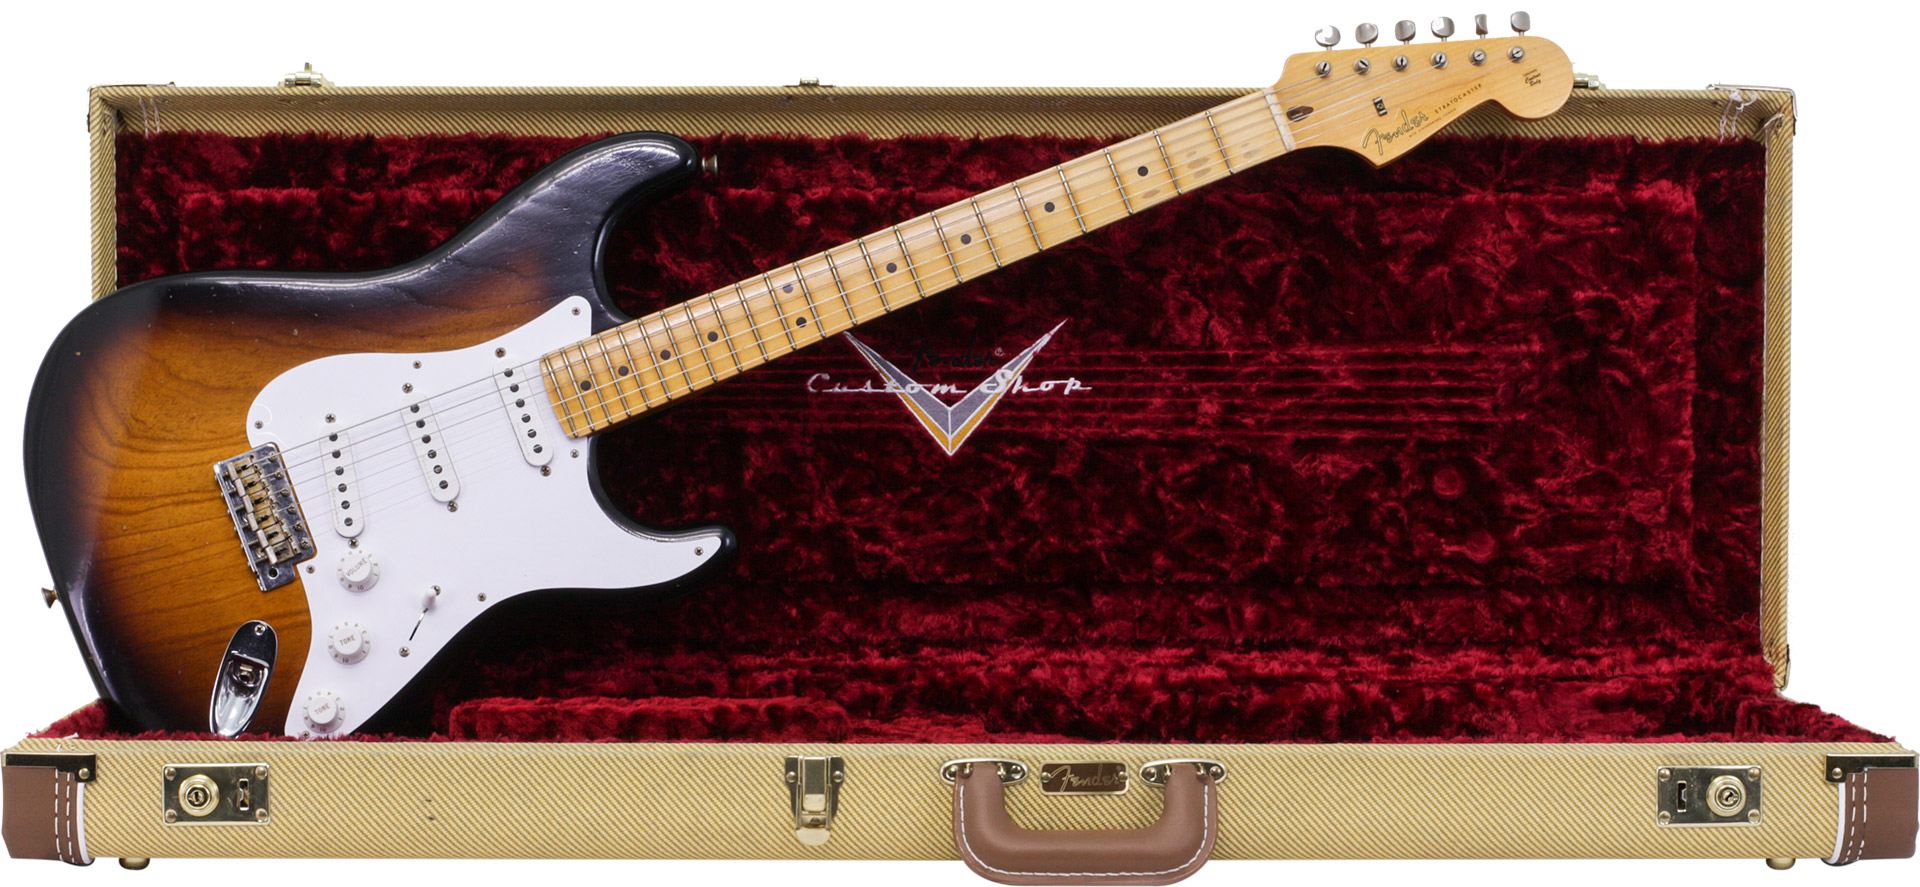 GUITARRA FENDER 150 7002 - SIG SERIES ERIC CLAPTON CUSTOM SHOP JOURNEYMAN RELIC - 803 - 2-TONE SB